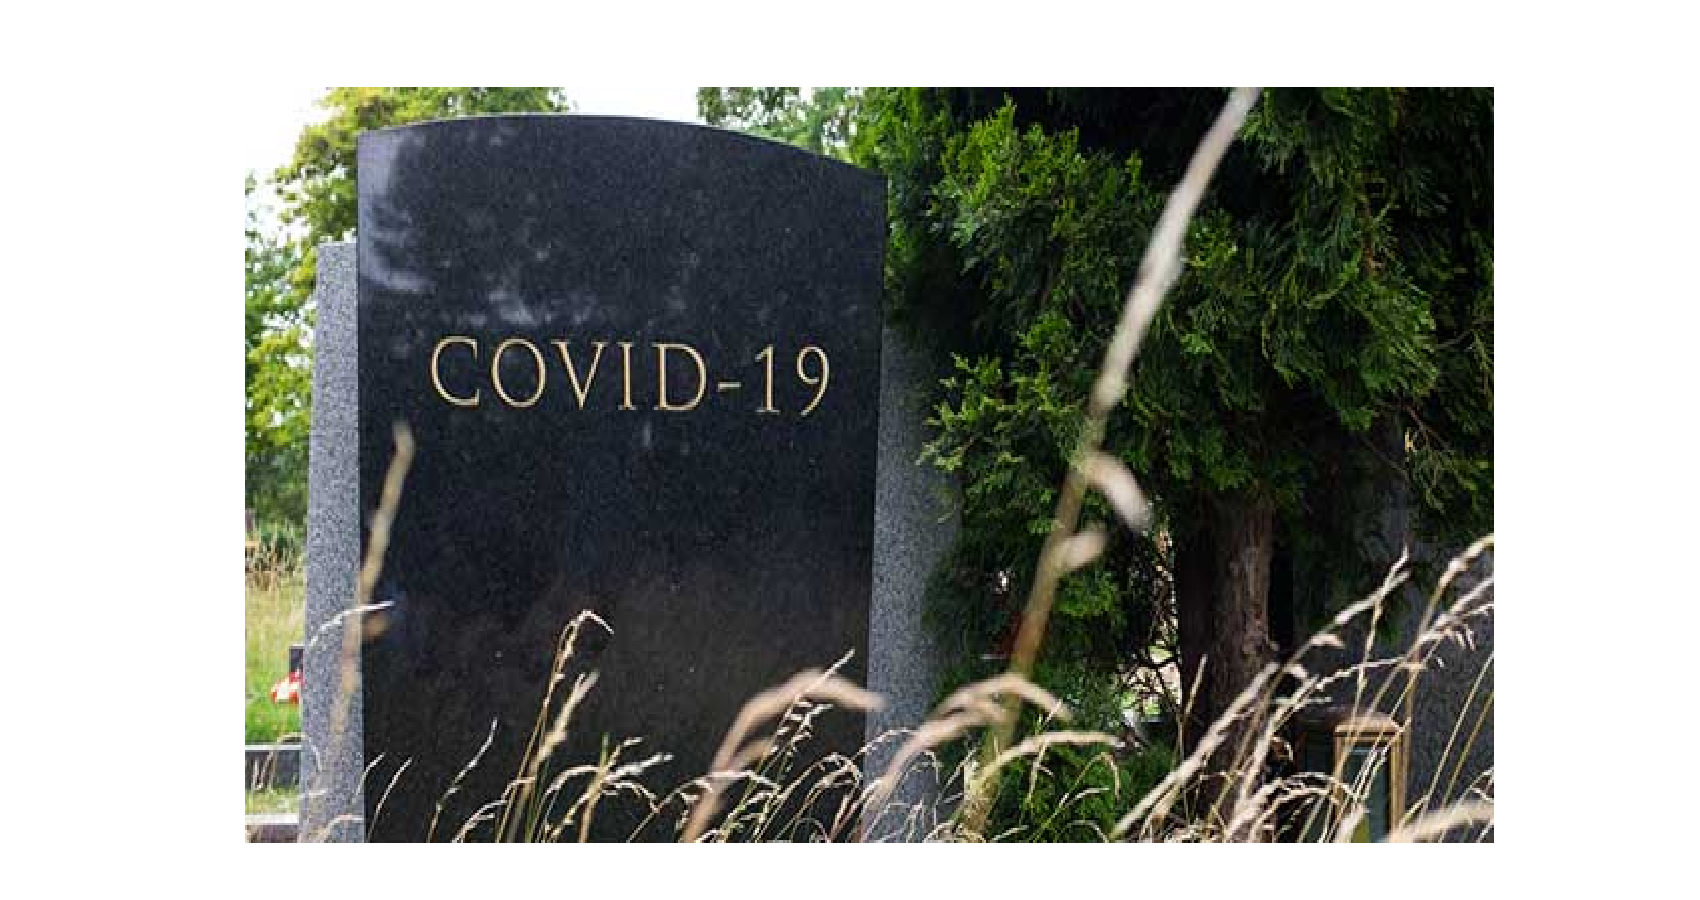 Covid Was Third Leading Cause Of Death In US In 2020